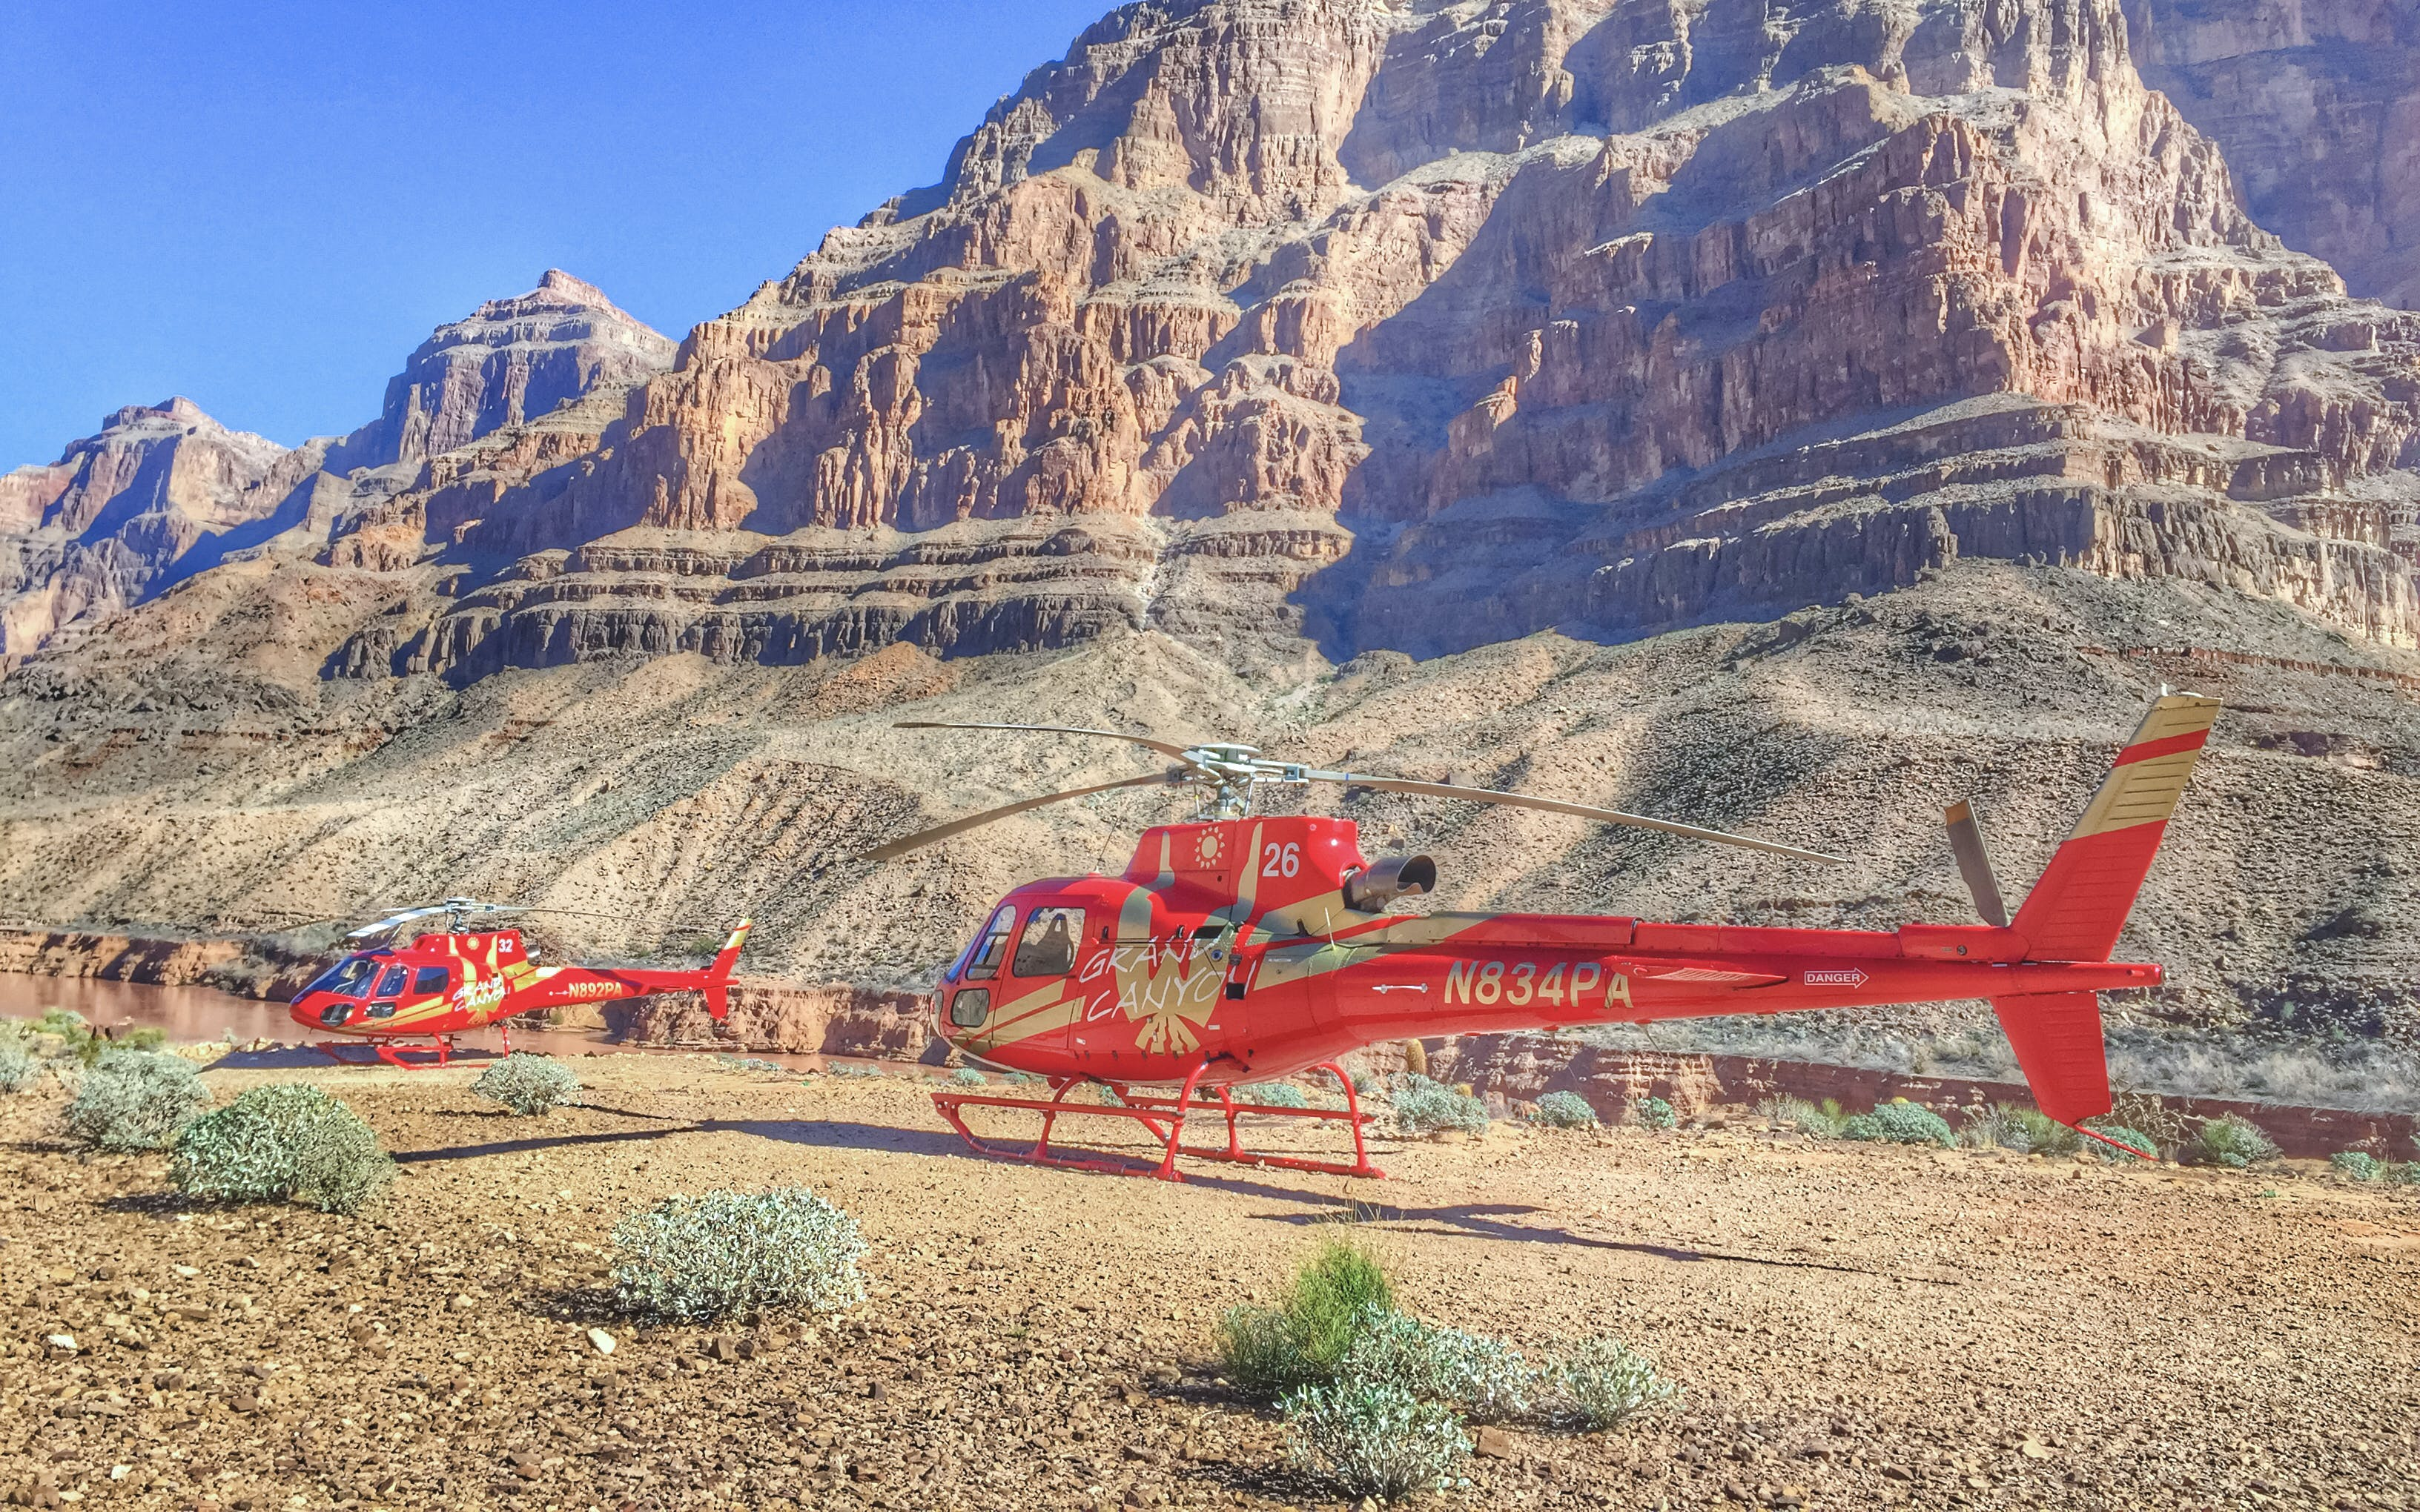 West Rim Helicopter Tour with River Cruise and Optional Skywalk (Self-Drive)